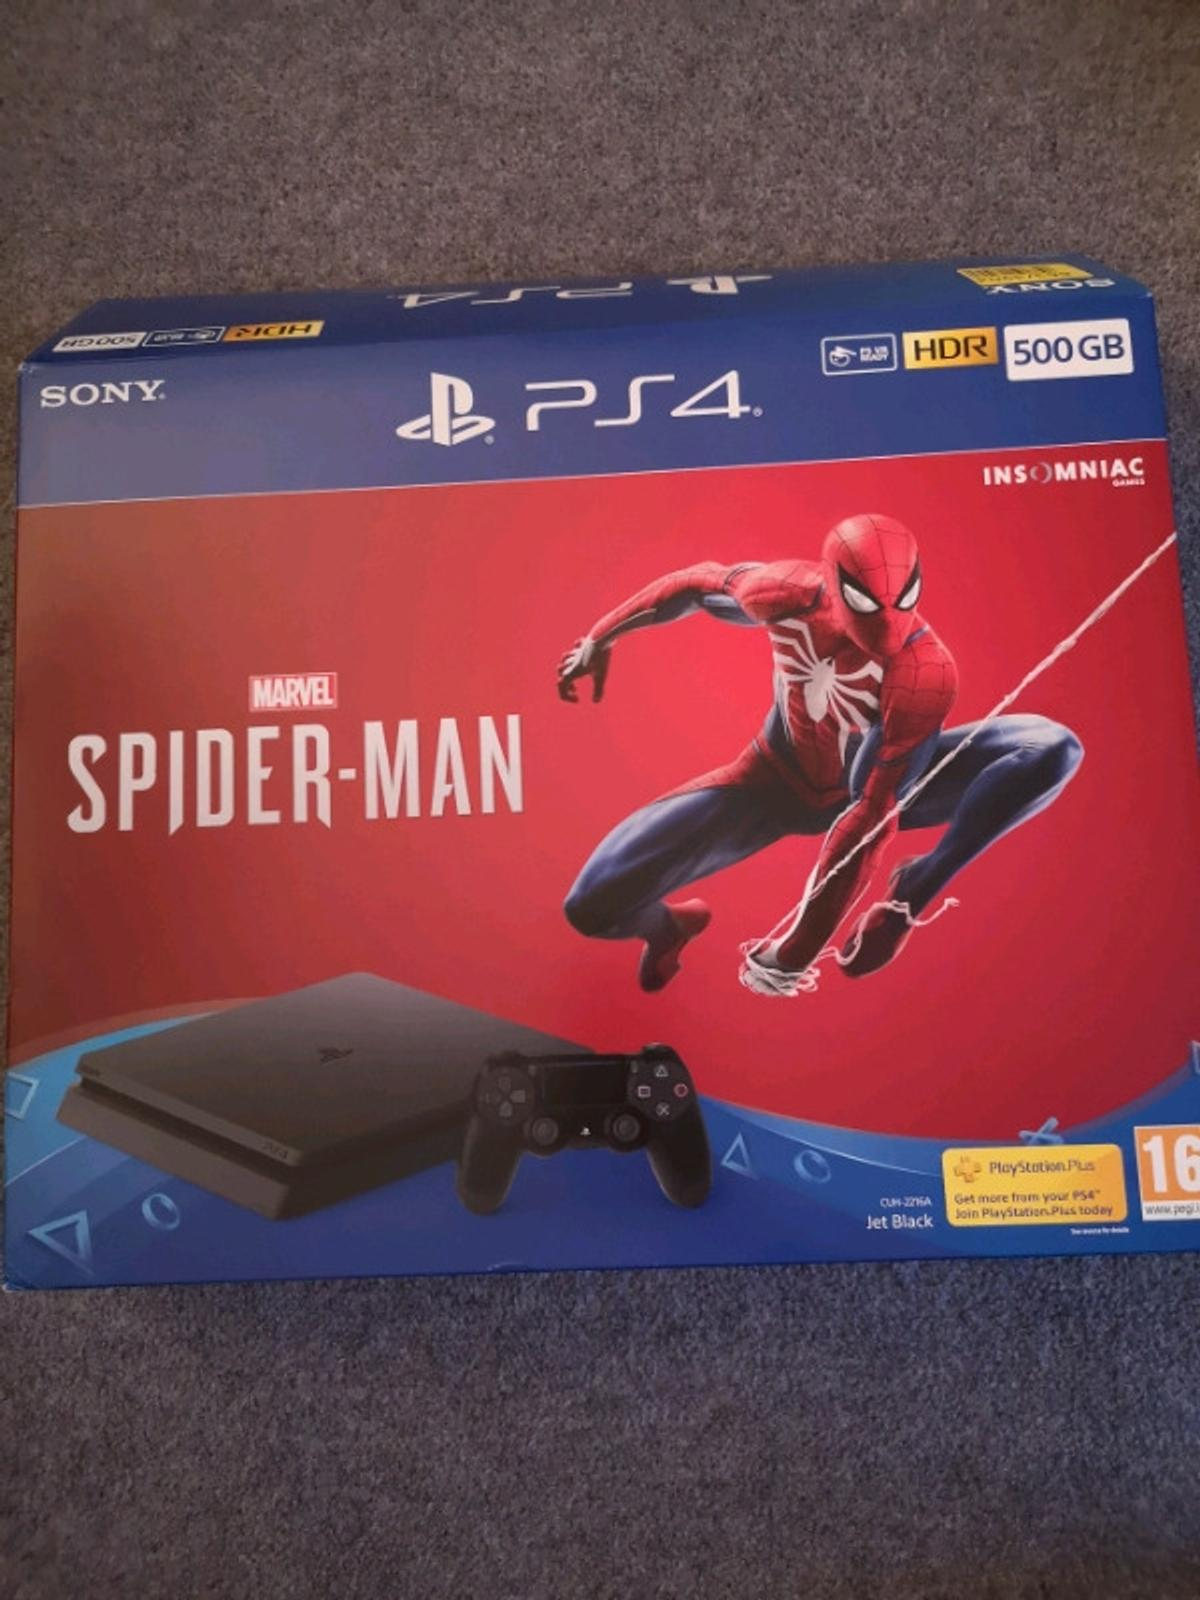 500GB PlayStation 4 and Spiderman Game. It excellent condition and comes with 1x controller.